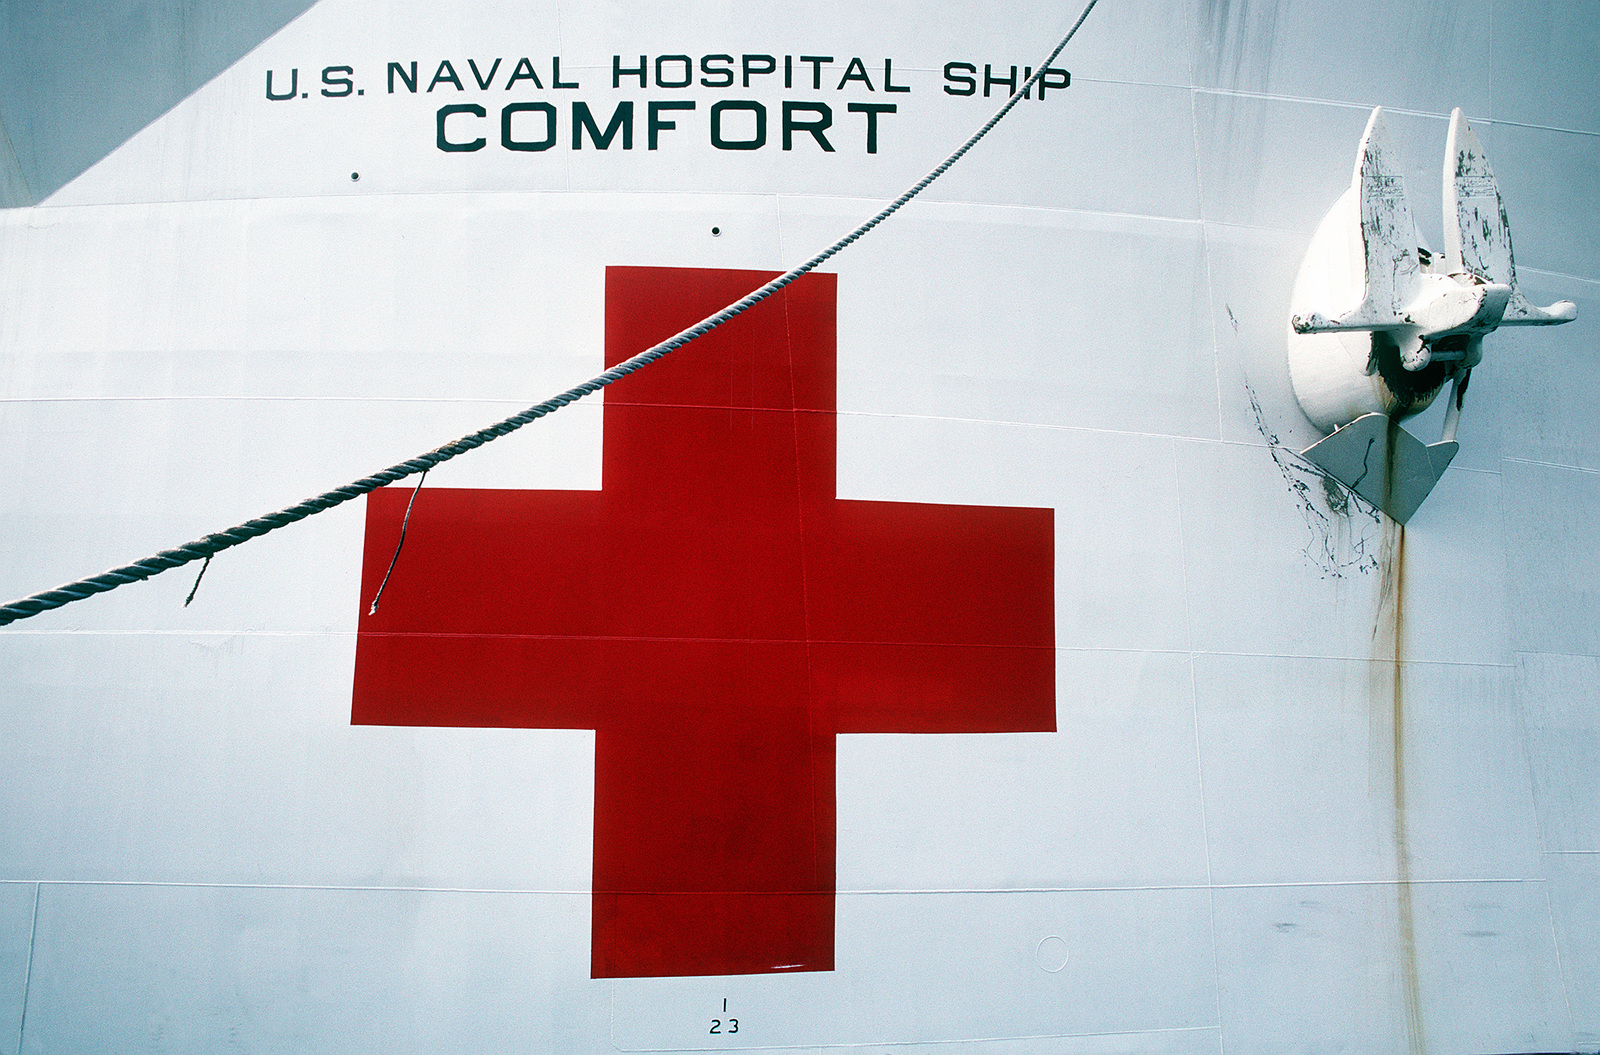 A close-up view of a portion of the bow of the hospital ship USNS COMFORT (T-AH-20). The COMFORT is preparing to depart for the Persian Gulf region, where it will remain on station in support of Operation Desert Shield